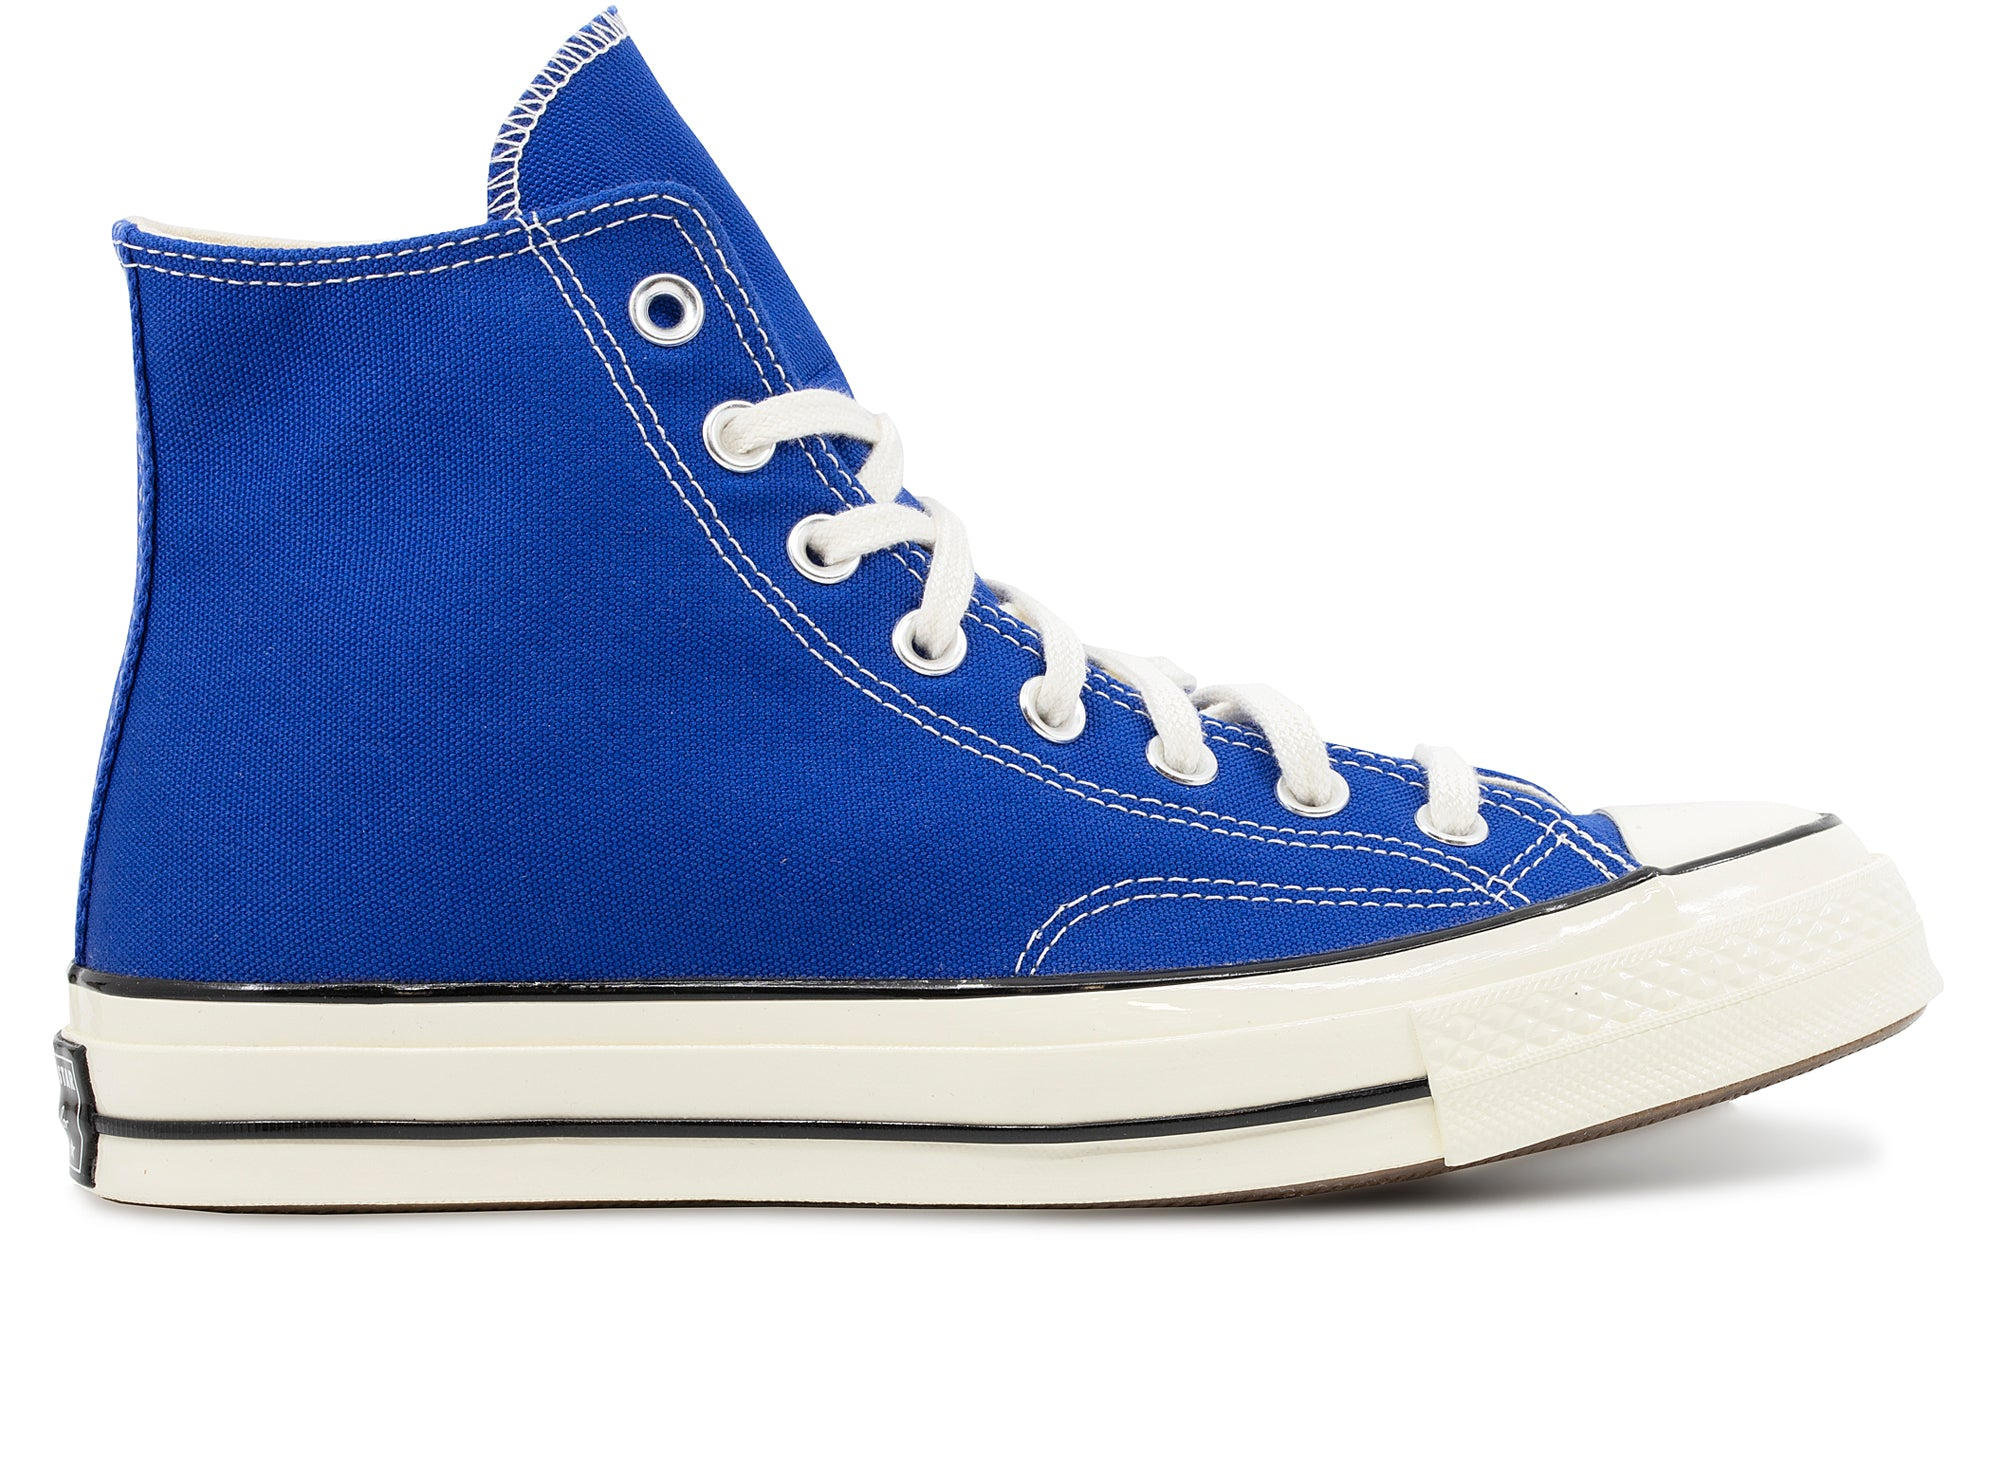 Converse Chuck 70 Hi in Blue